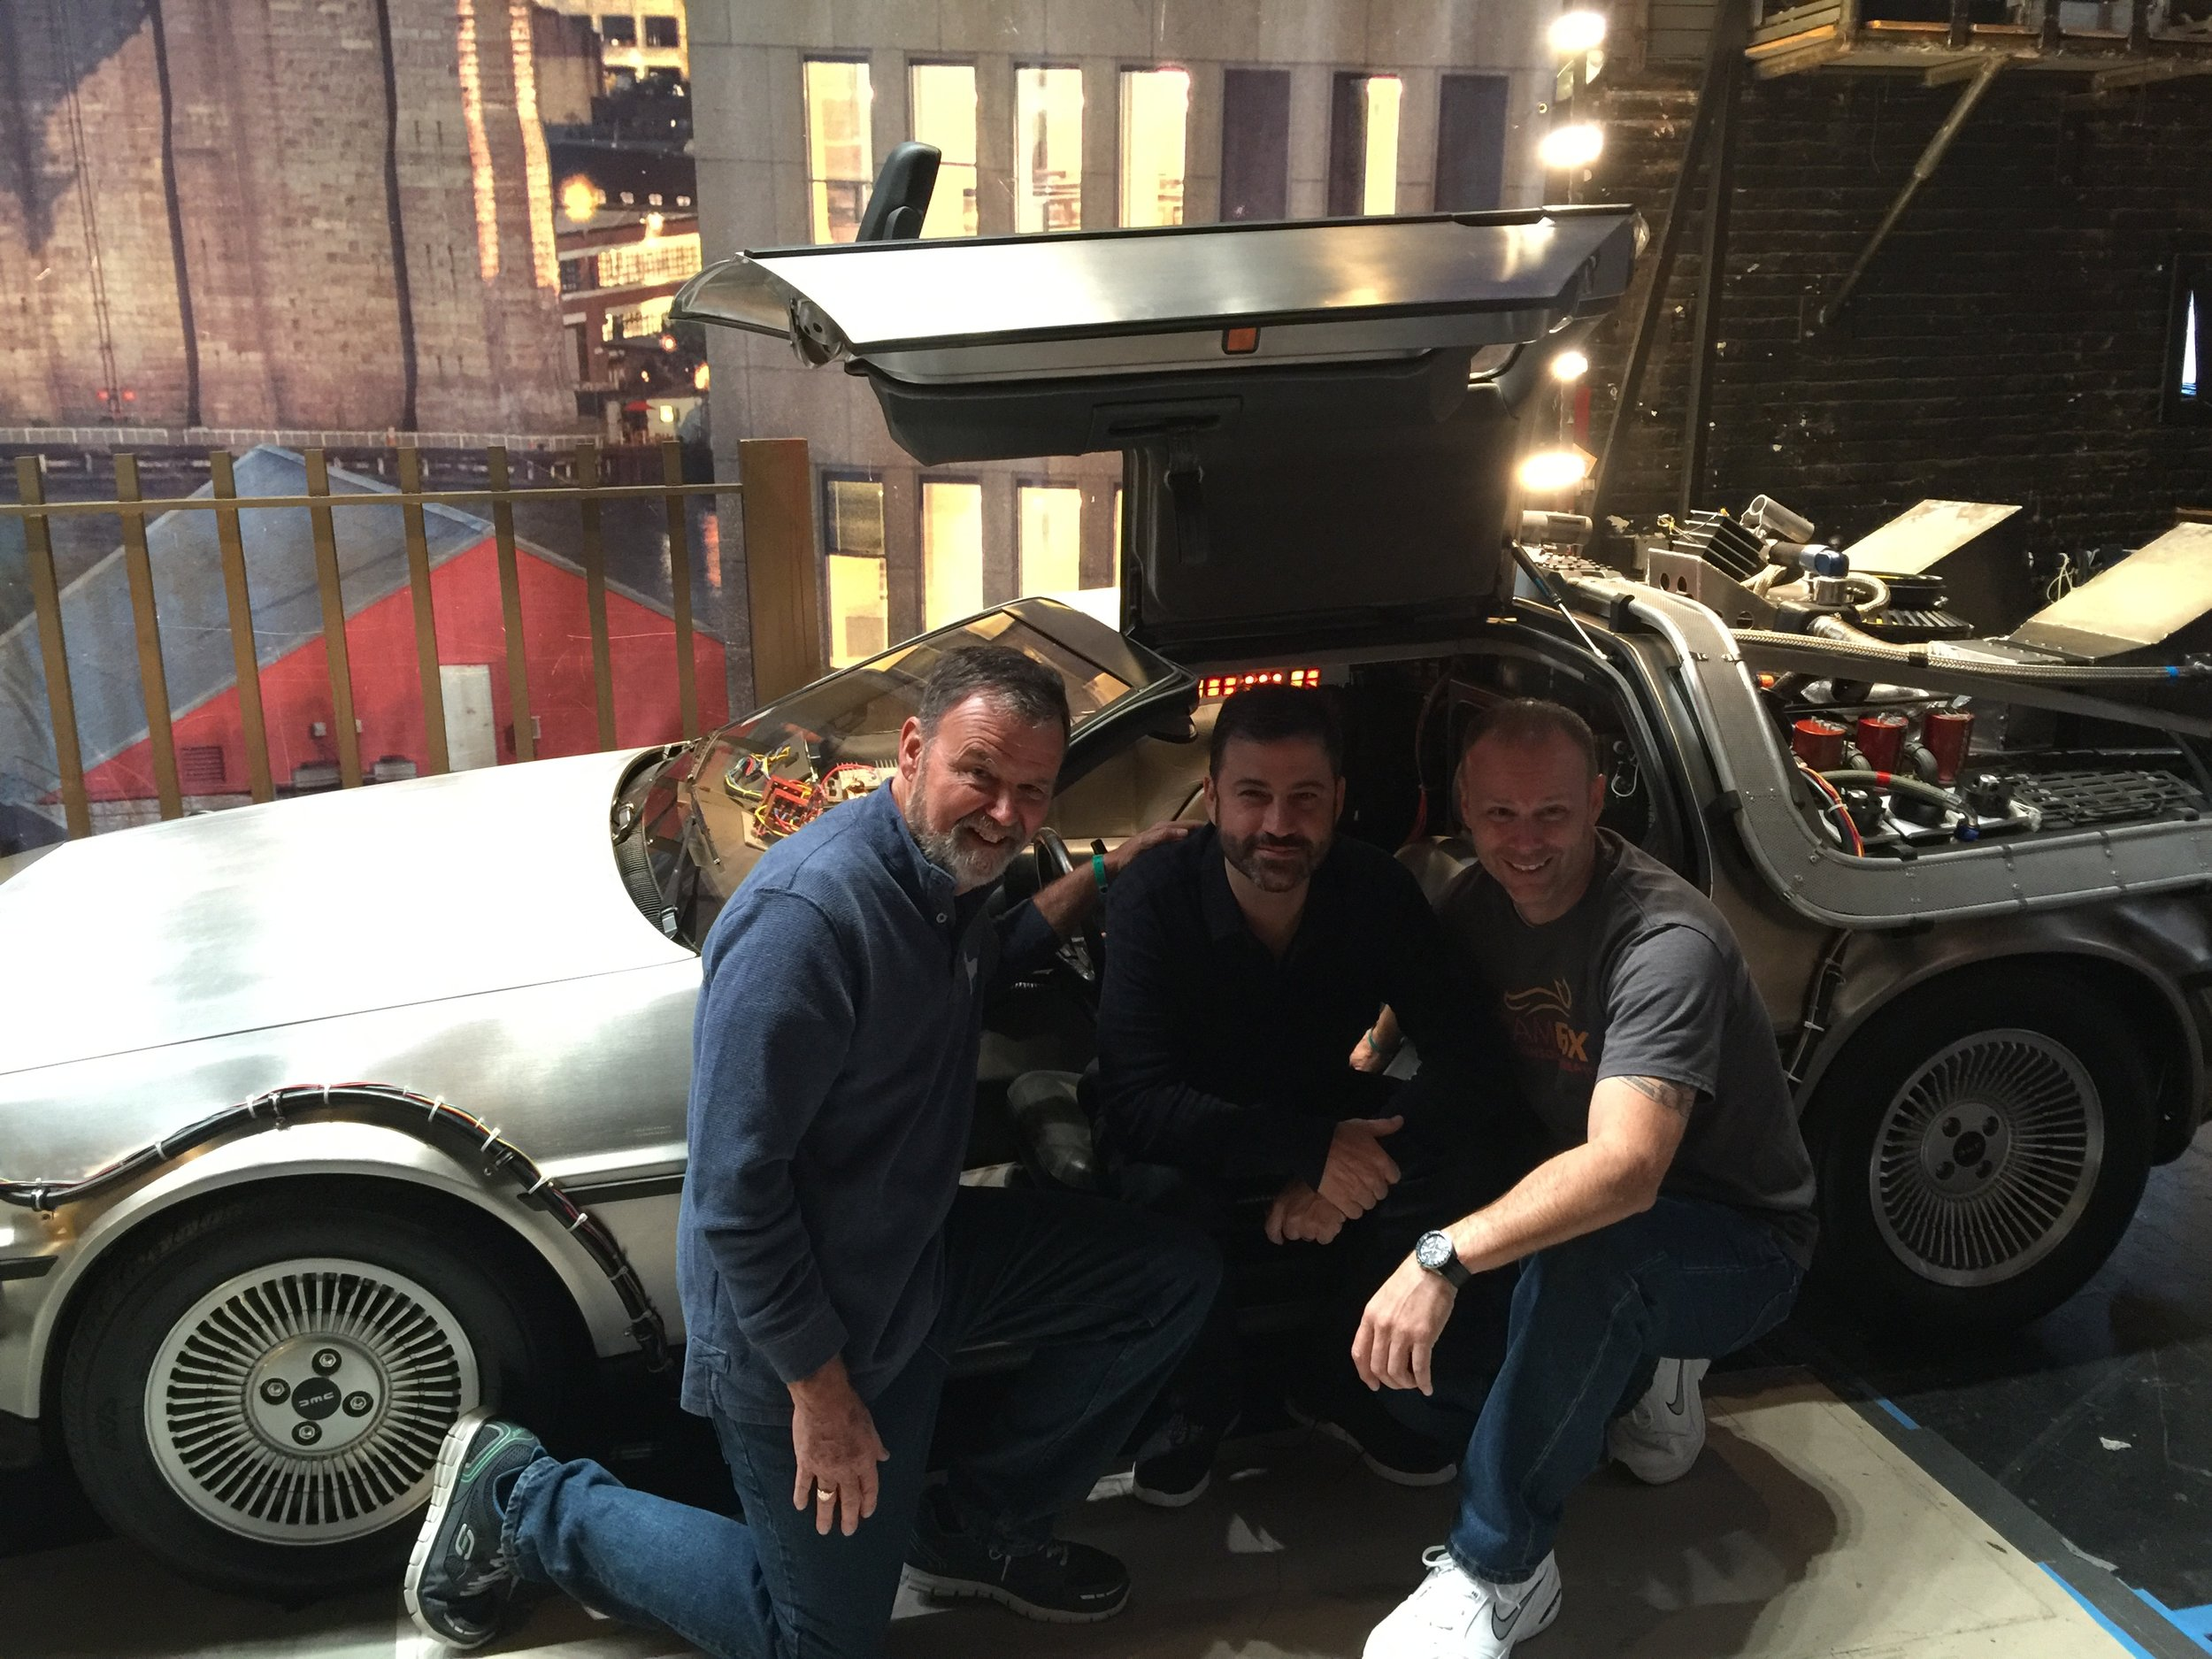 Bill and Patrick with the one and only Jimmy Kimmel. This was taken at the Brooklyn Academy of Music on October 21, 2015…..BTTF Day when he had Michael J Fox and Christopher Lloyd on as Doc and Marty. Our time machine was used and it was awesome!